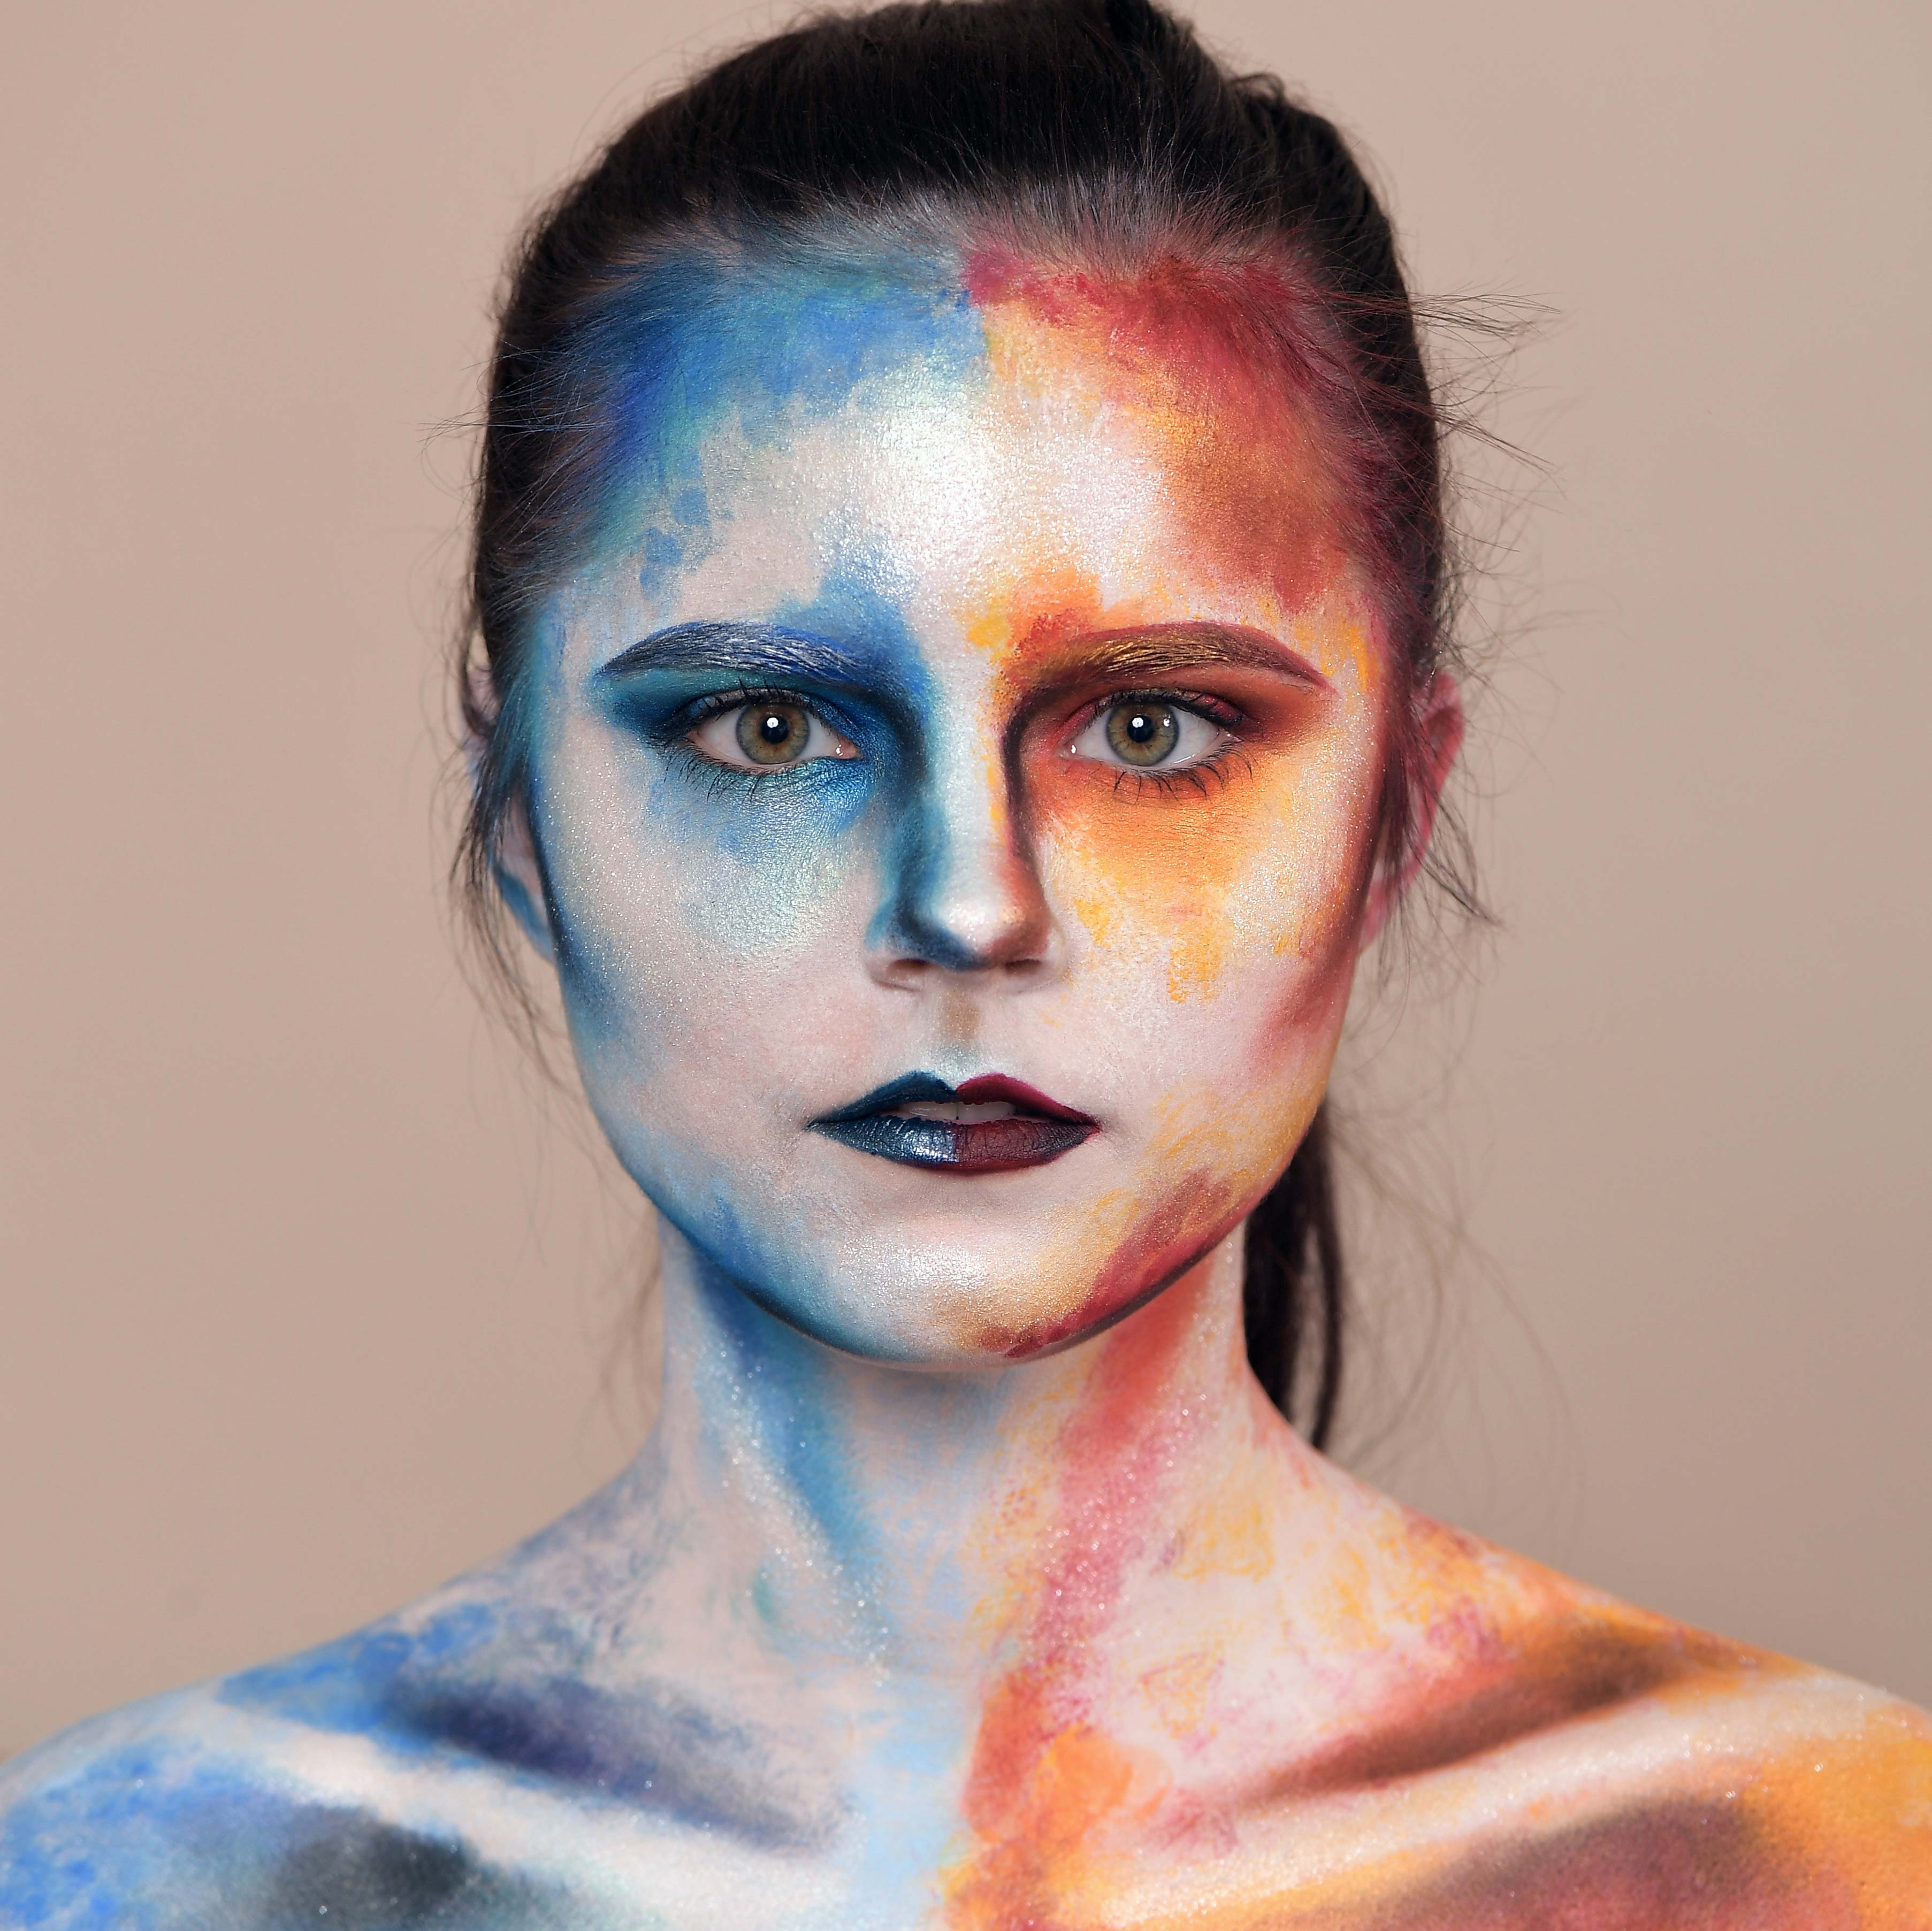 The final product after Carrie Esser uses warm and cool colored, water-based body paint on a friend.